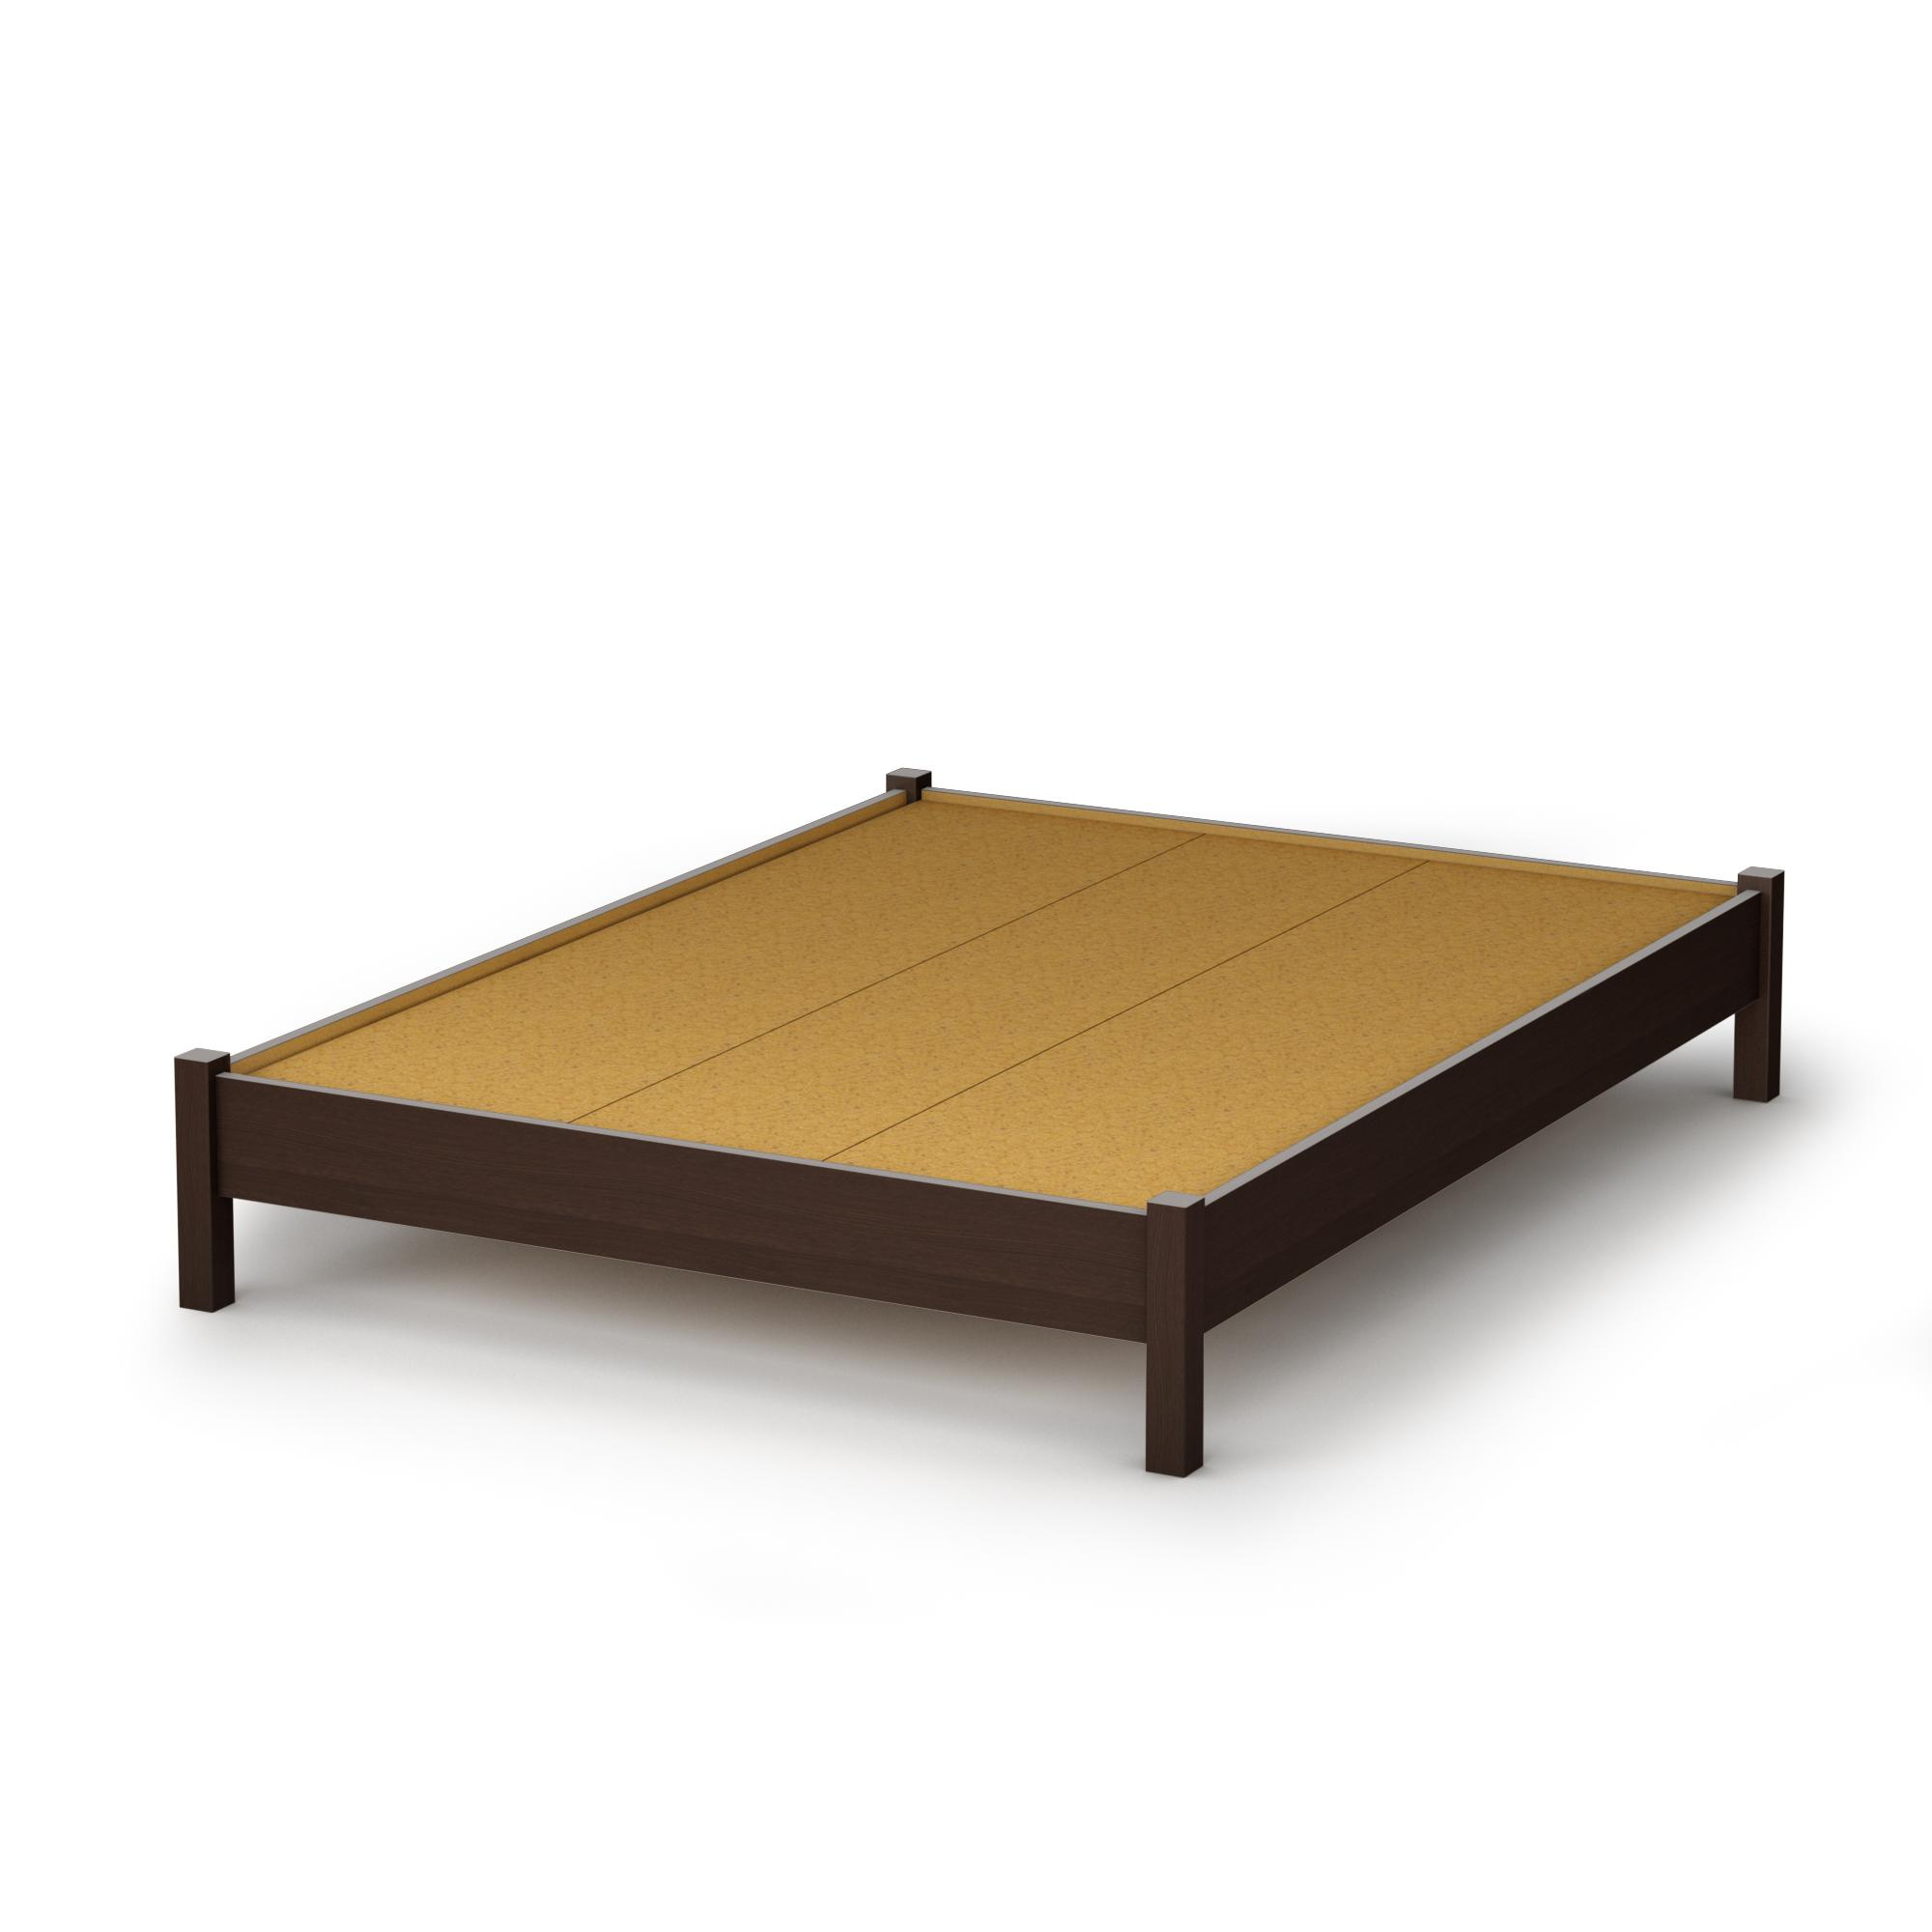 "South Shore Full Platform Bed (54"") by OJ Commerce 3159204 ..."